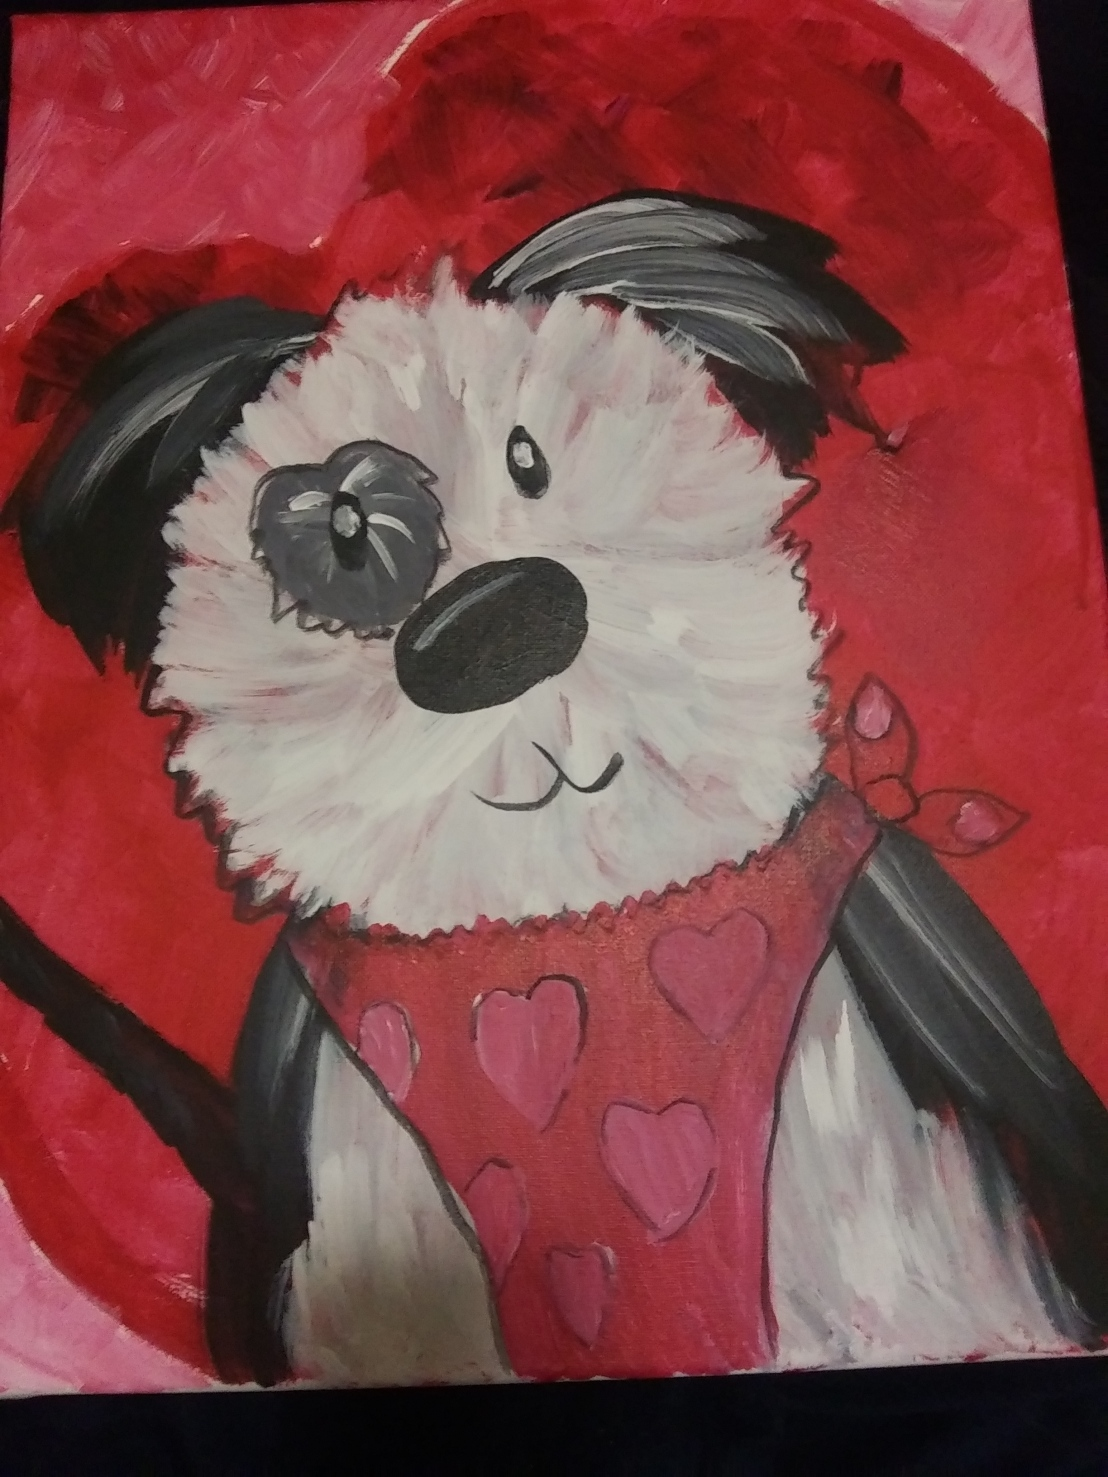 I Went to an Art Class and Learned to Paint a Valentine's Puppy